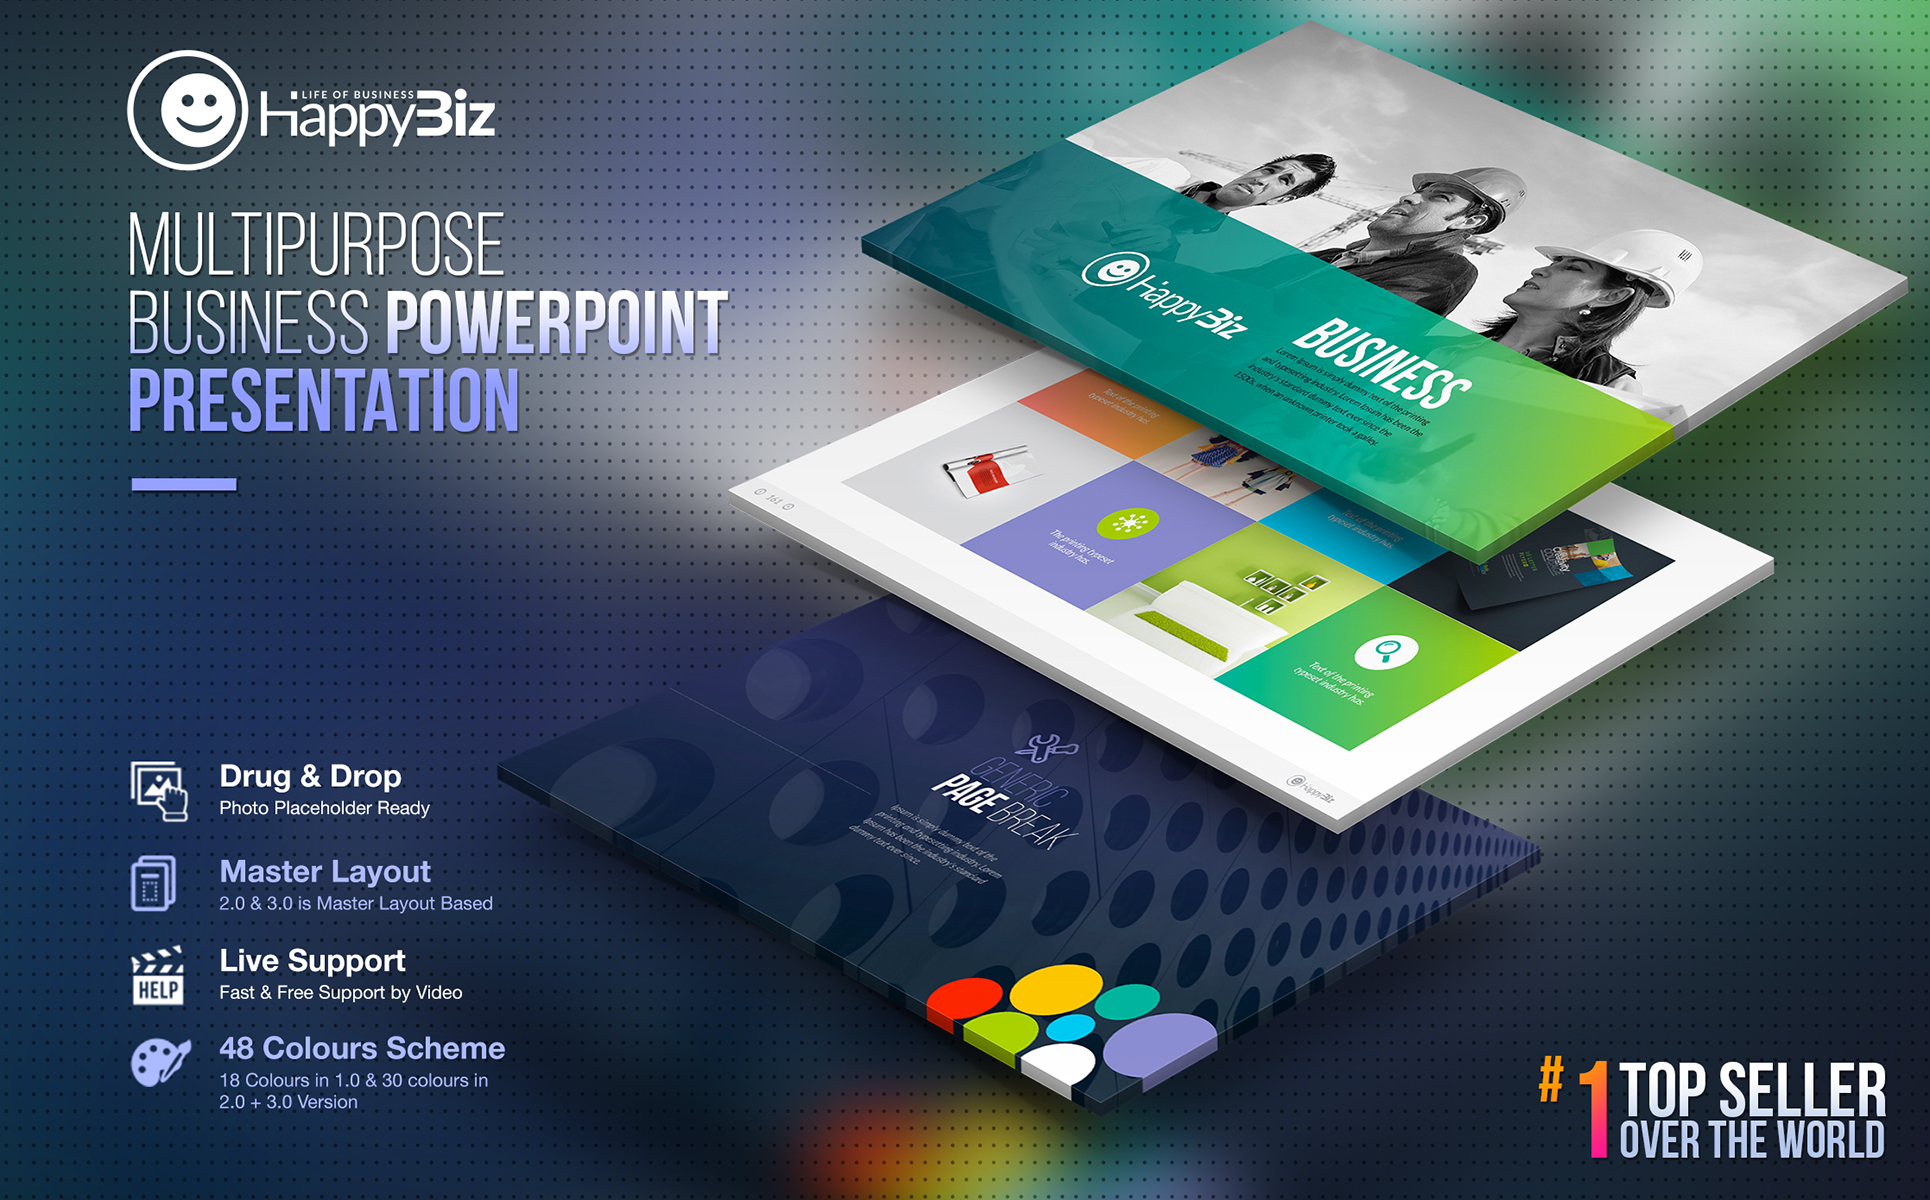 Happybiz business powerpoint template 67132 zoom in wajeb Gallery